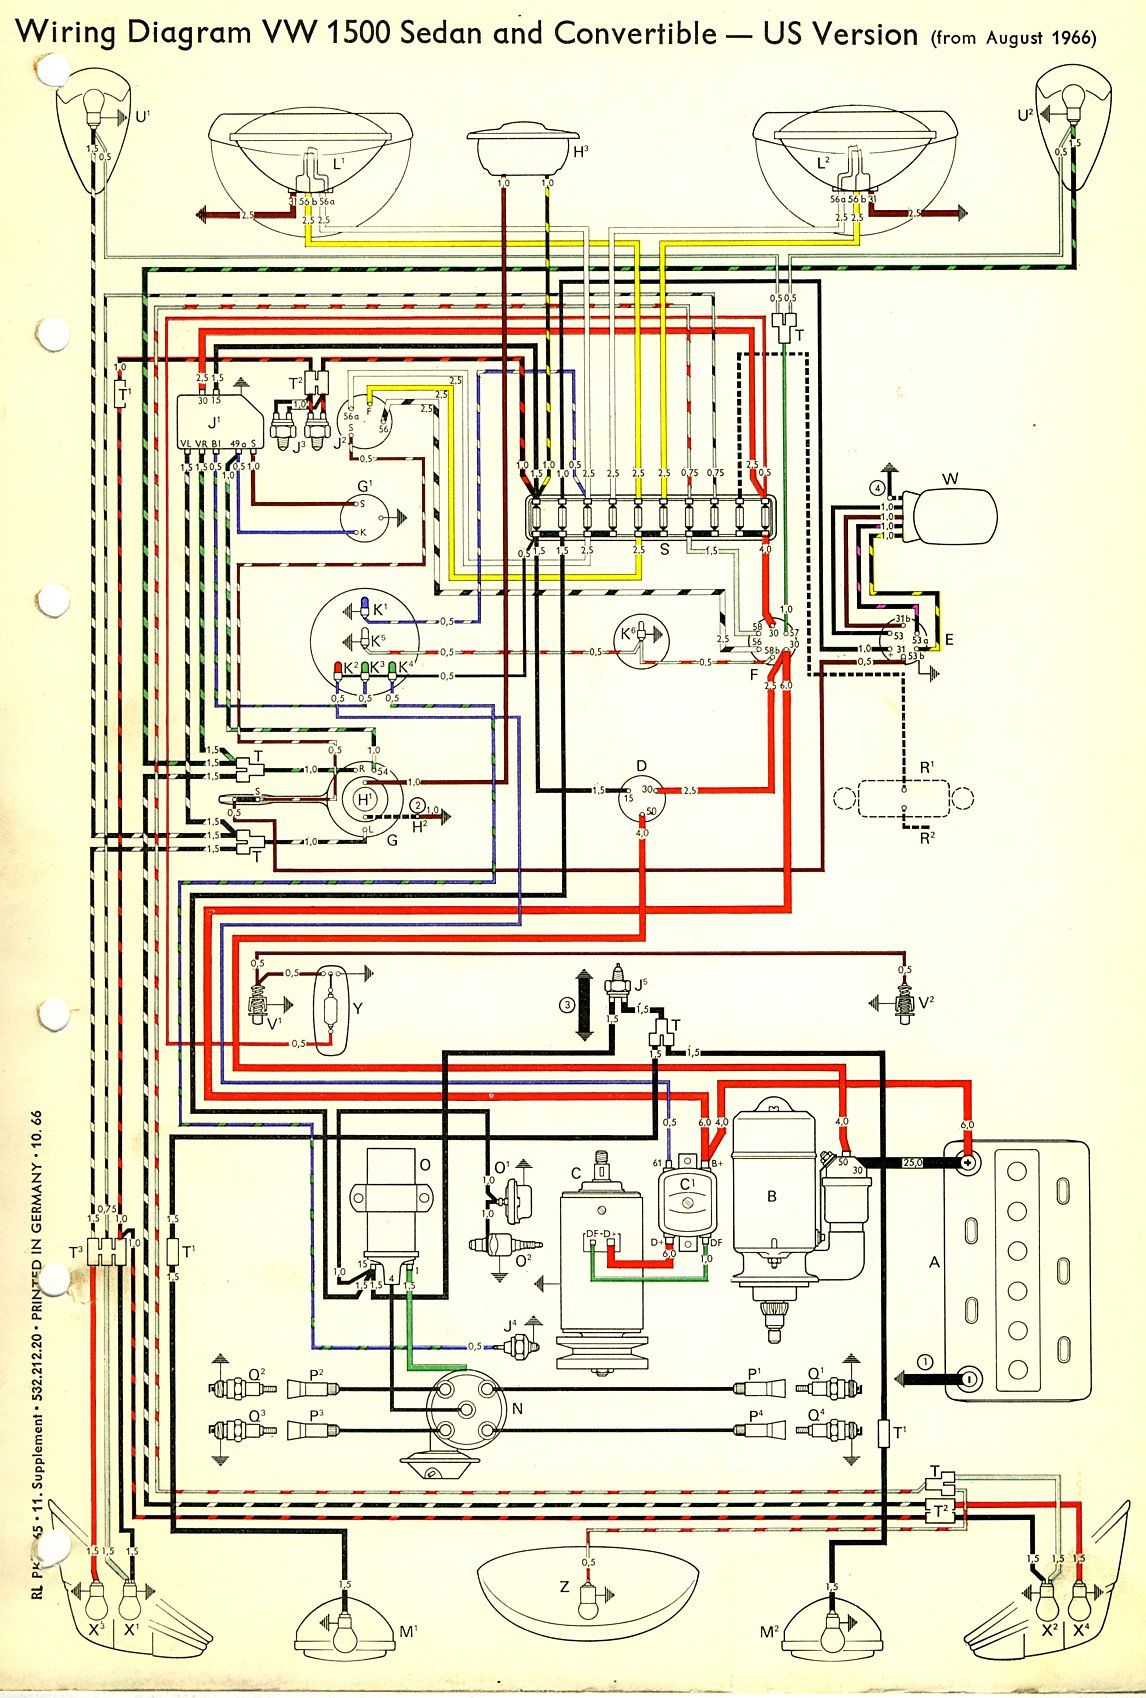 1967 beetle wiring diagram usa thegoldenbug com best 1967 vw rh pinterest com Electrical Wiring Diagrams 1973 VW Wiring Diagram